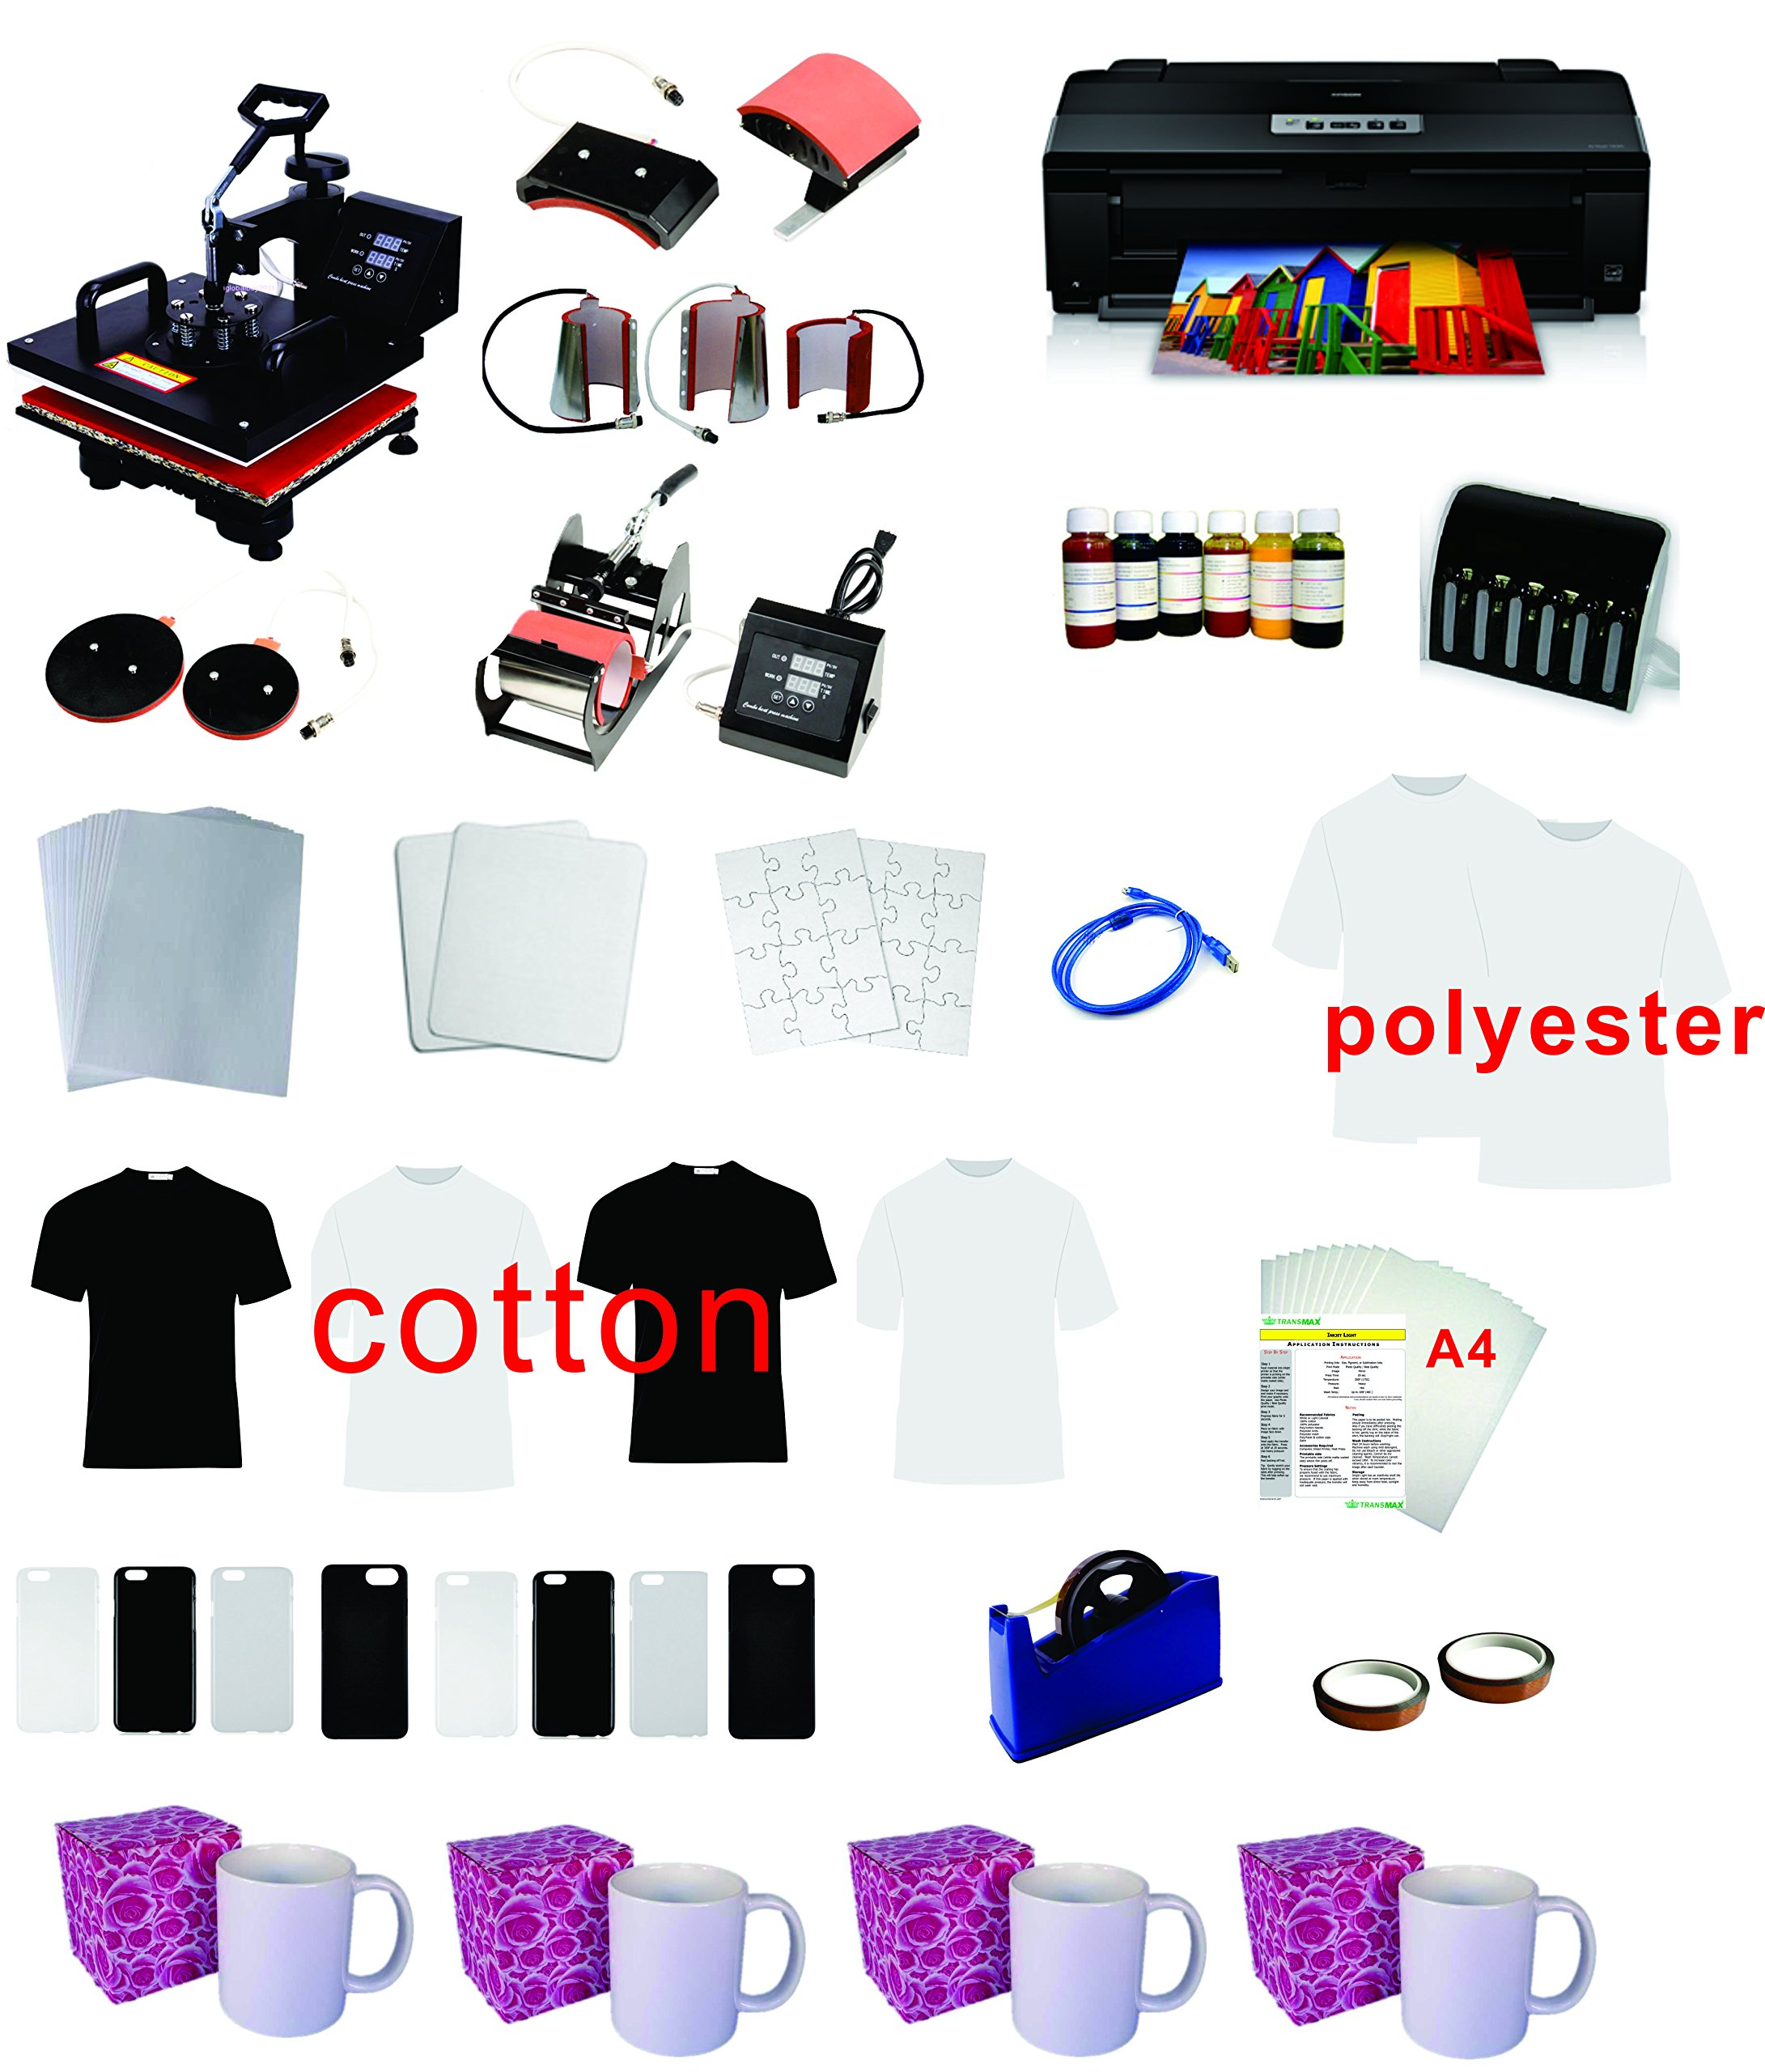 8in1 Professional Sublimation Heat Transfer Machine Epson Printer 1430 CISS KIT